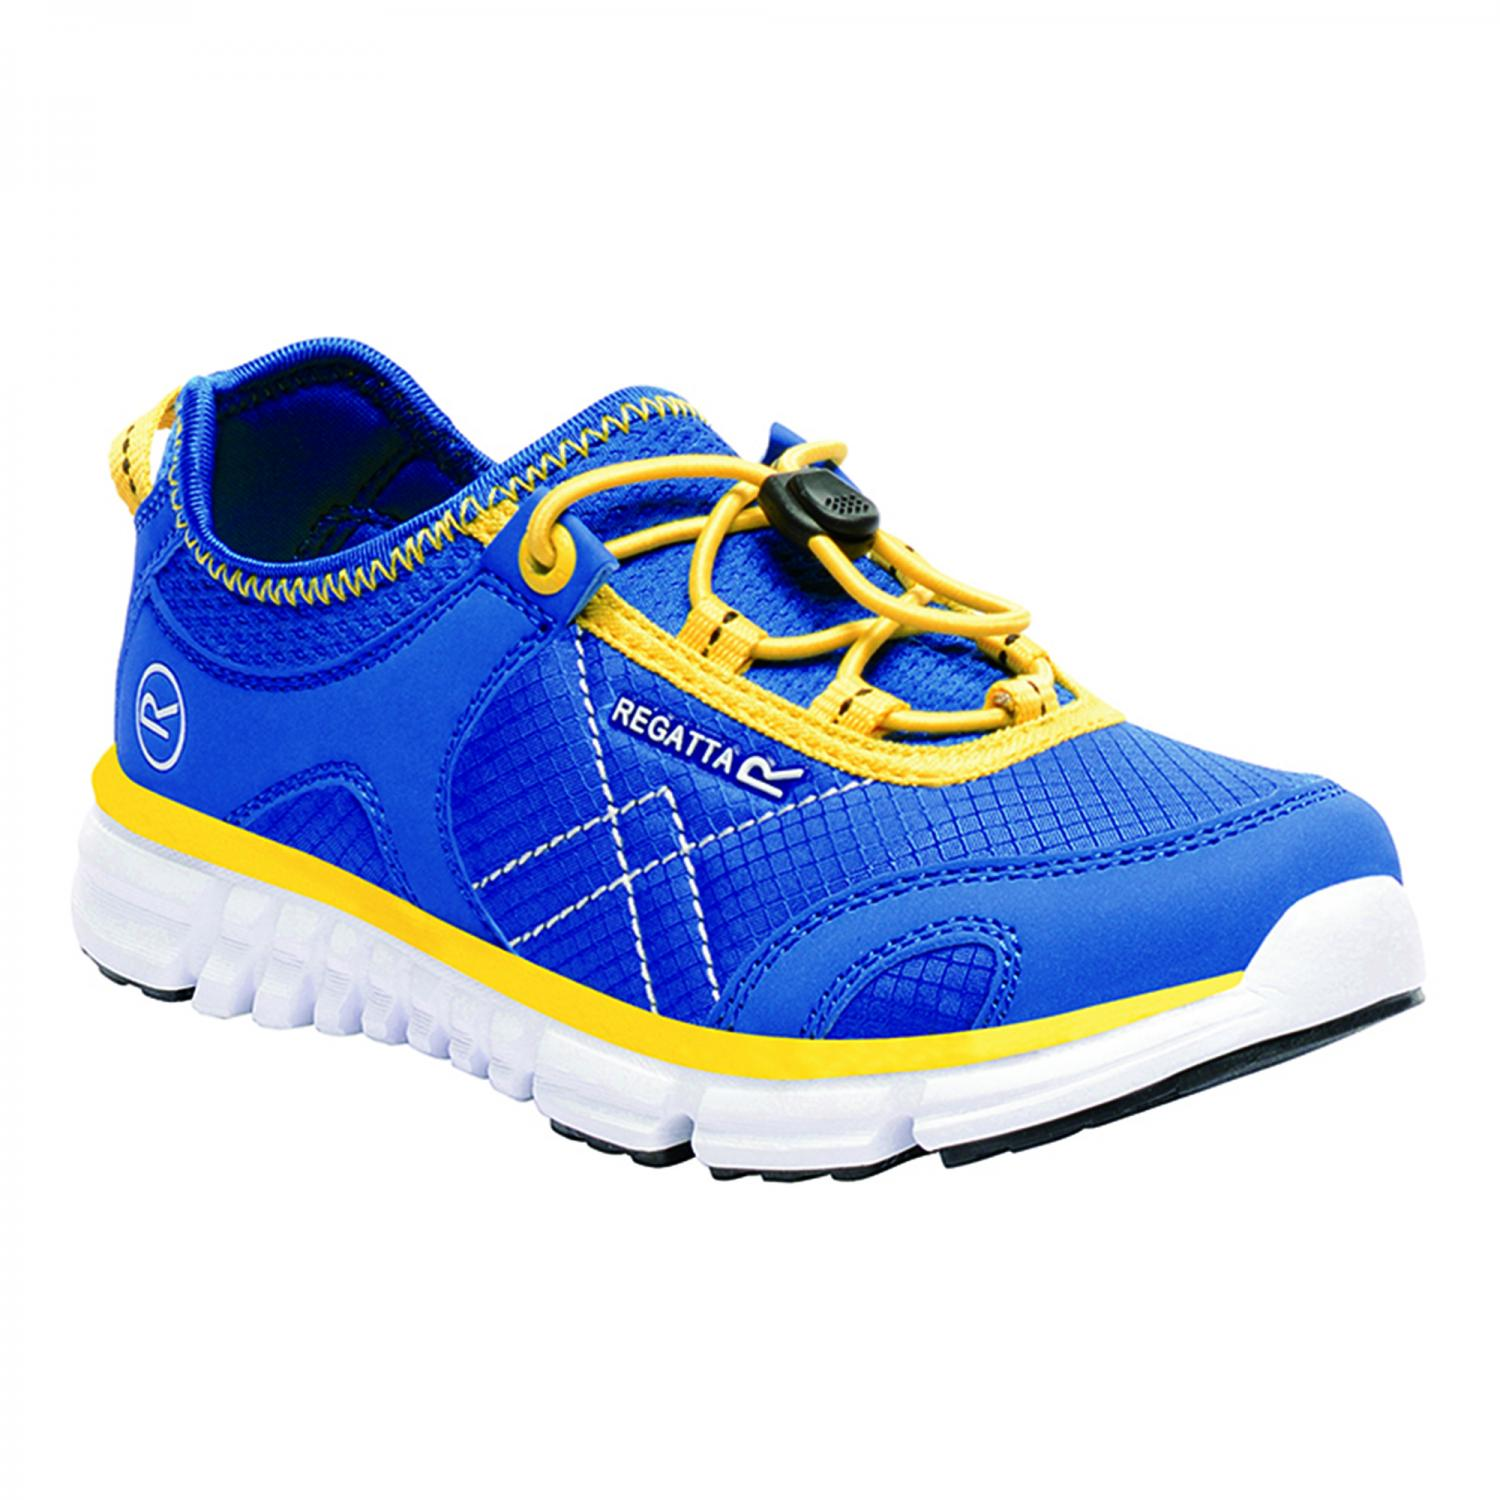 Platipus II junior Shoe Blue Yellow